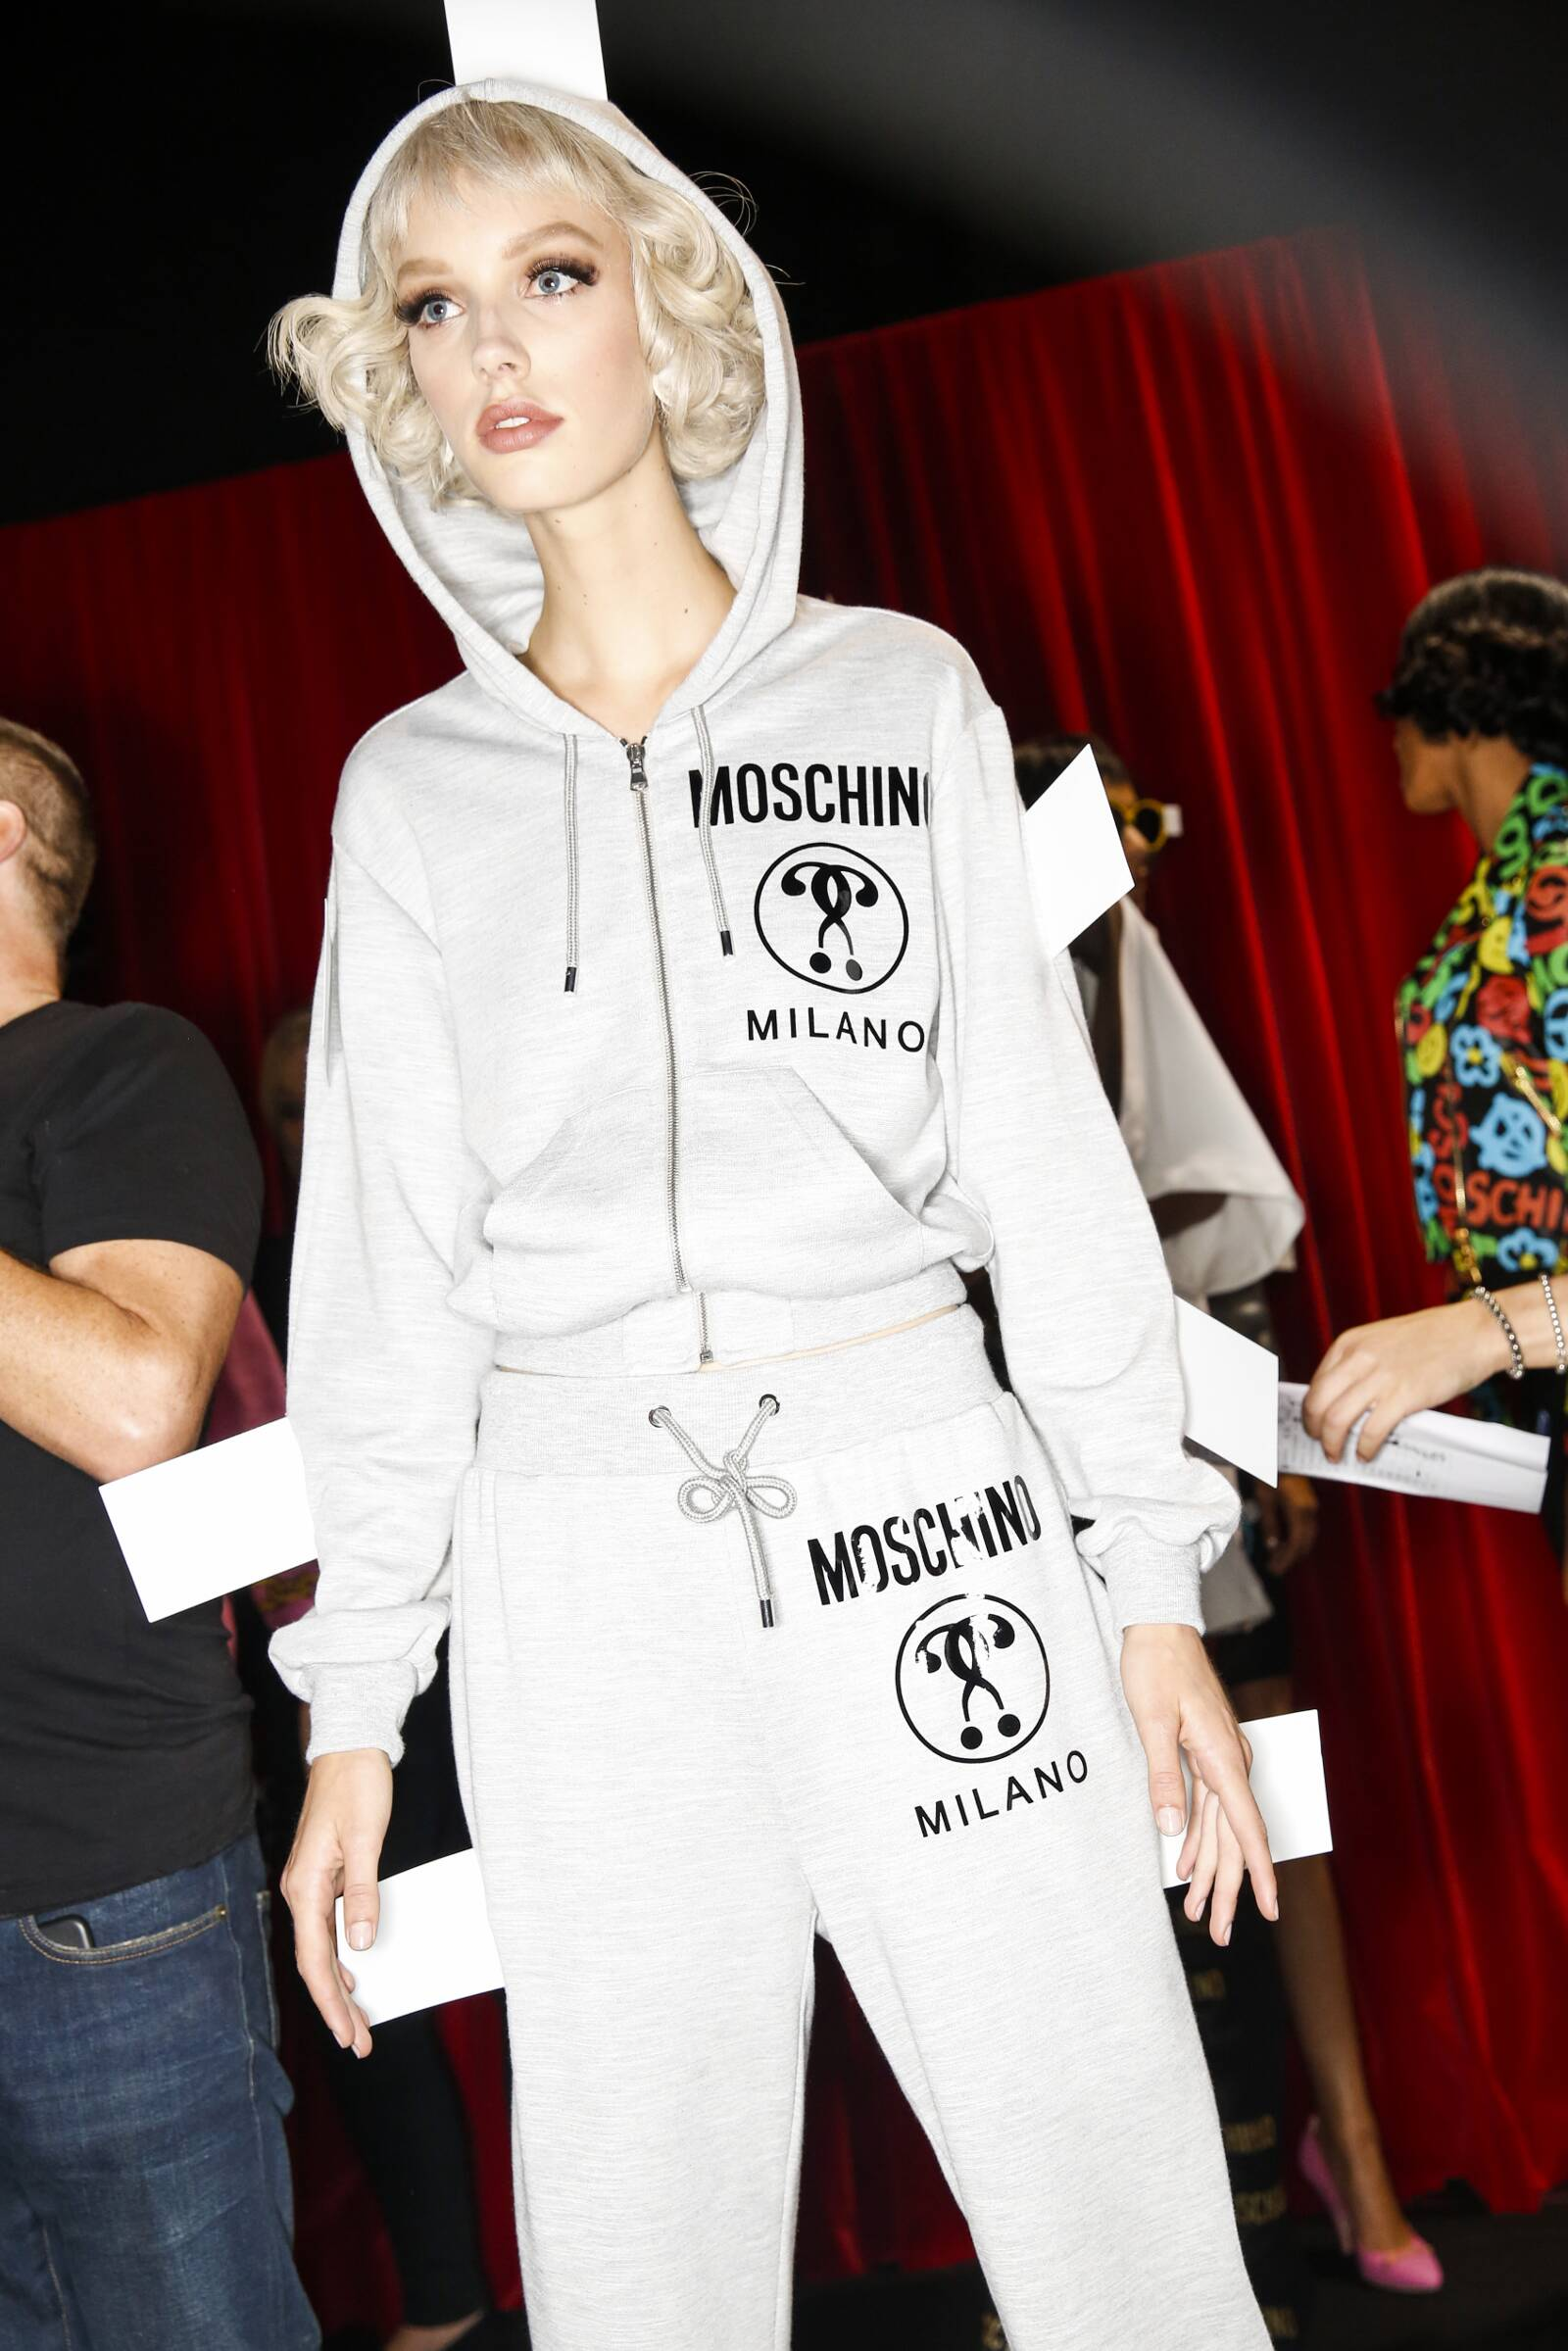 Backstage Woman Moschino Model Milan Fashion Week